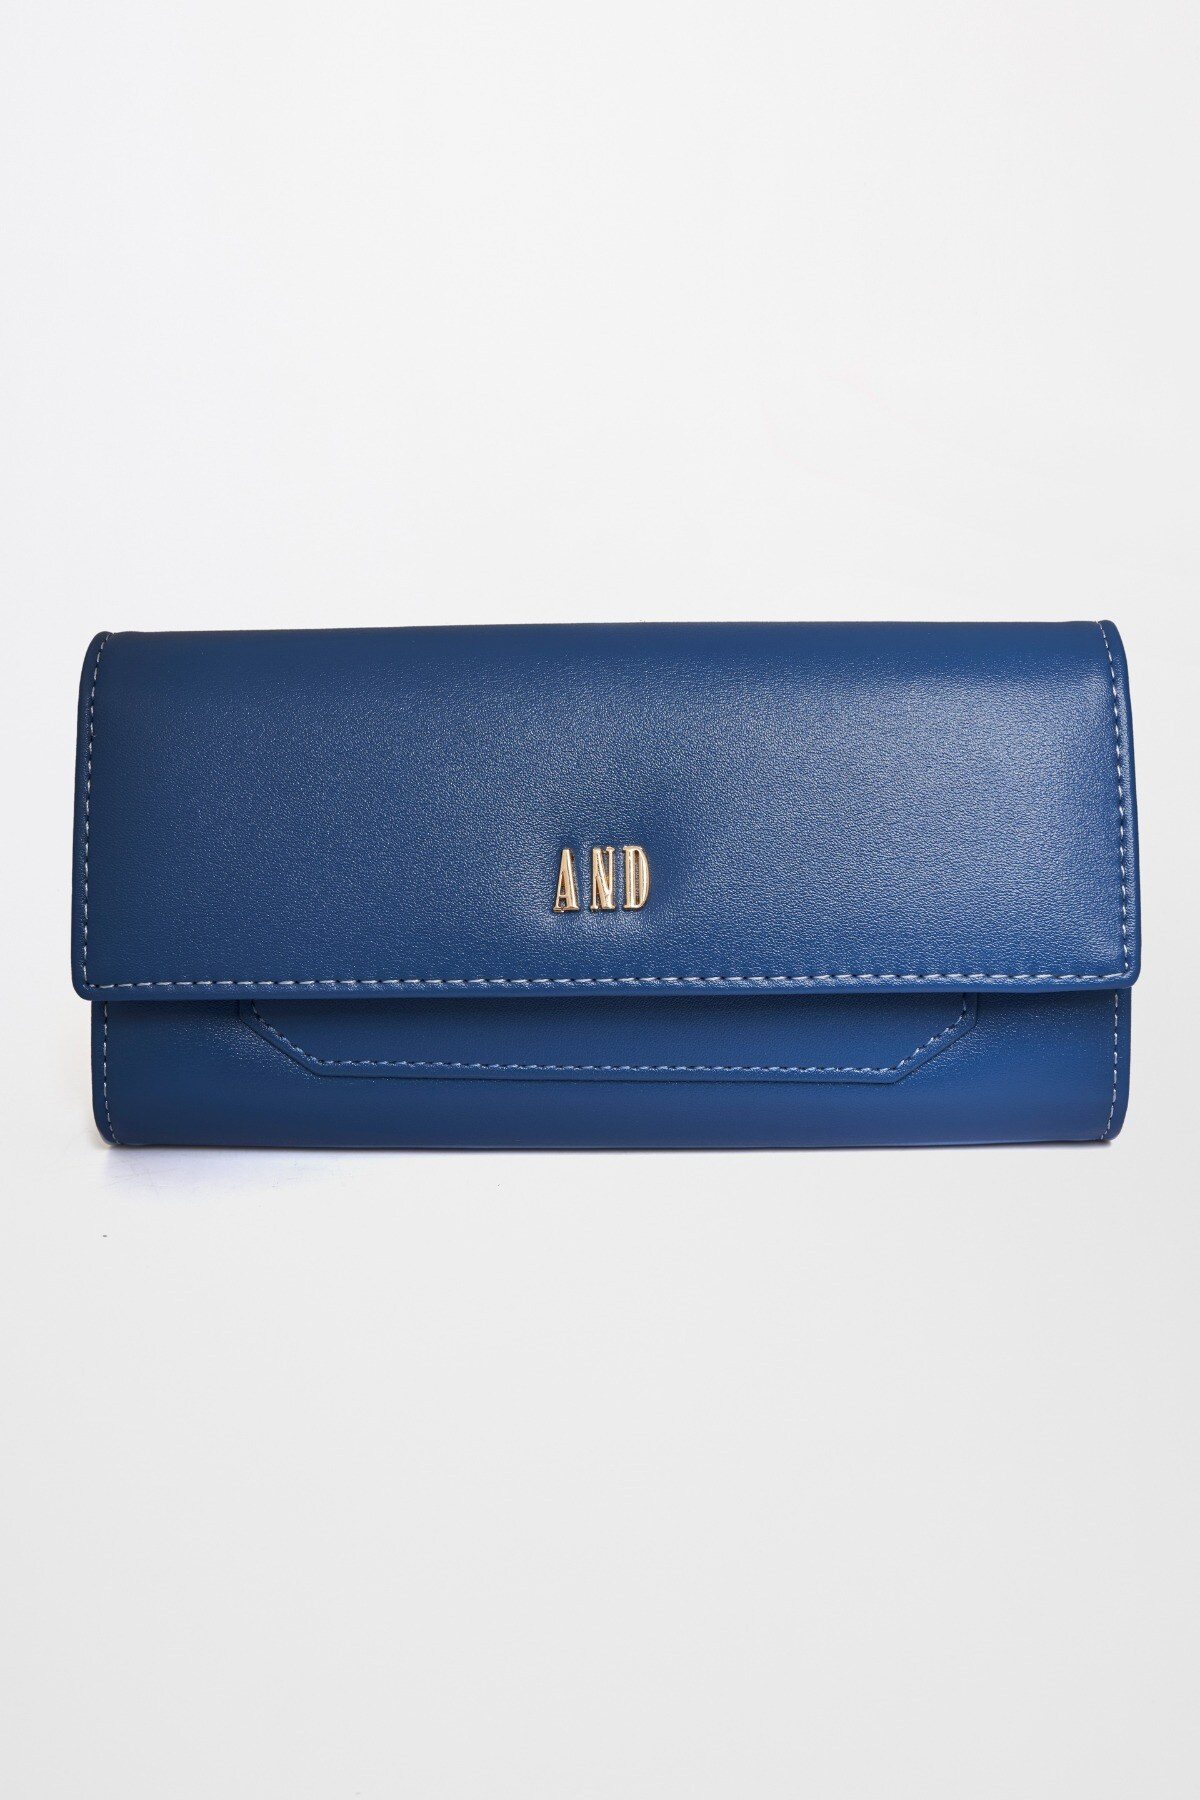 AND   Teal Wallet